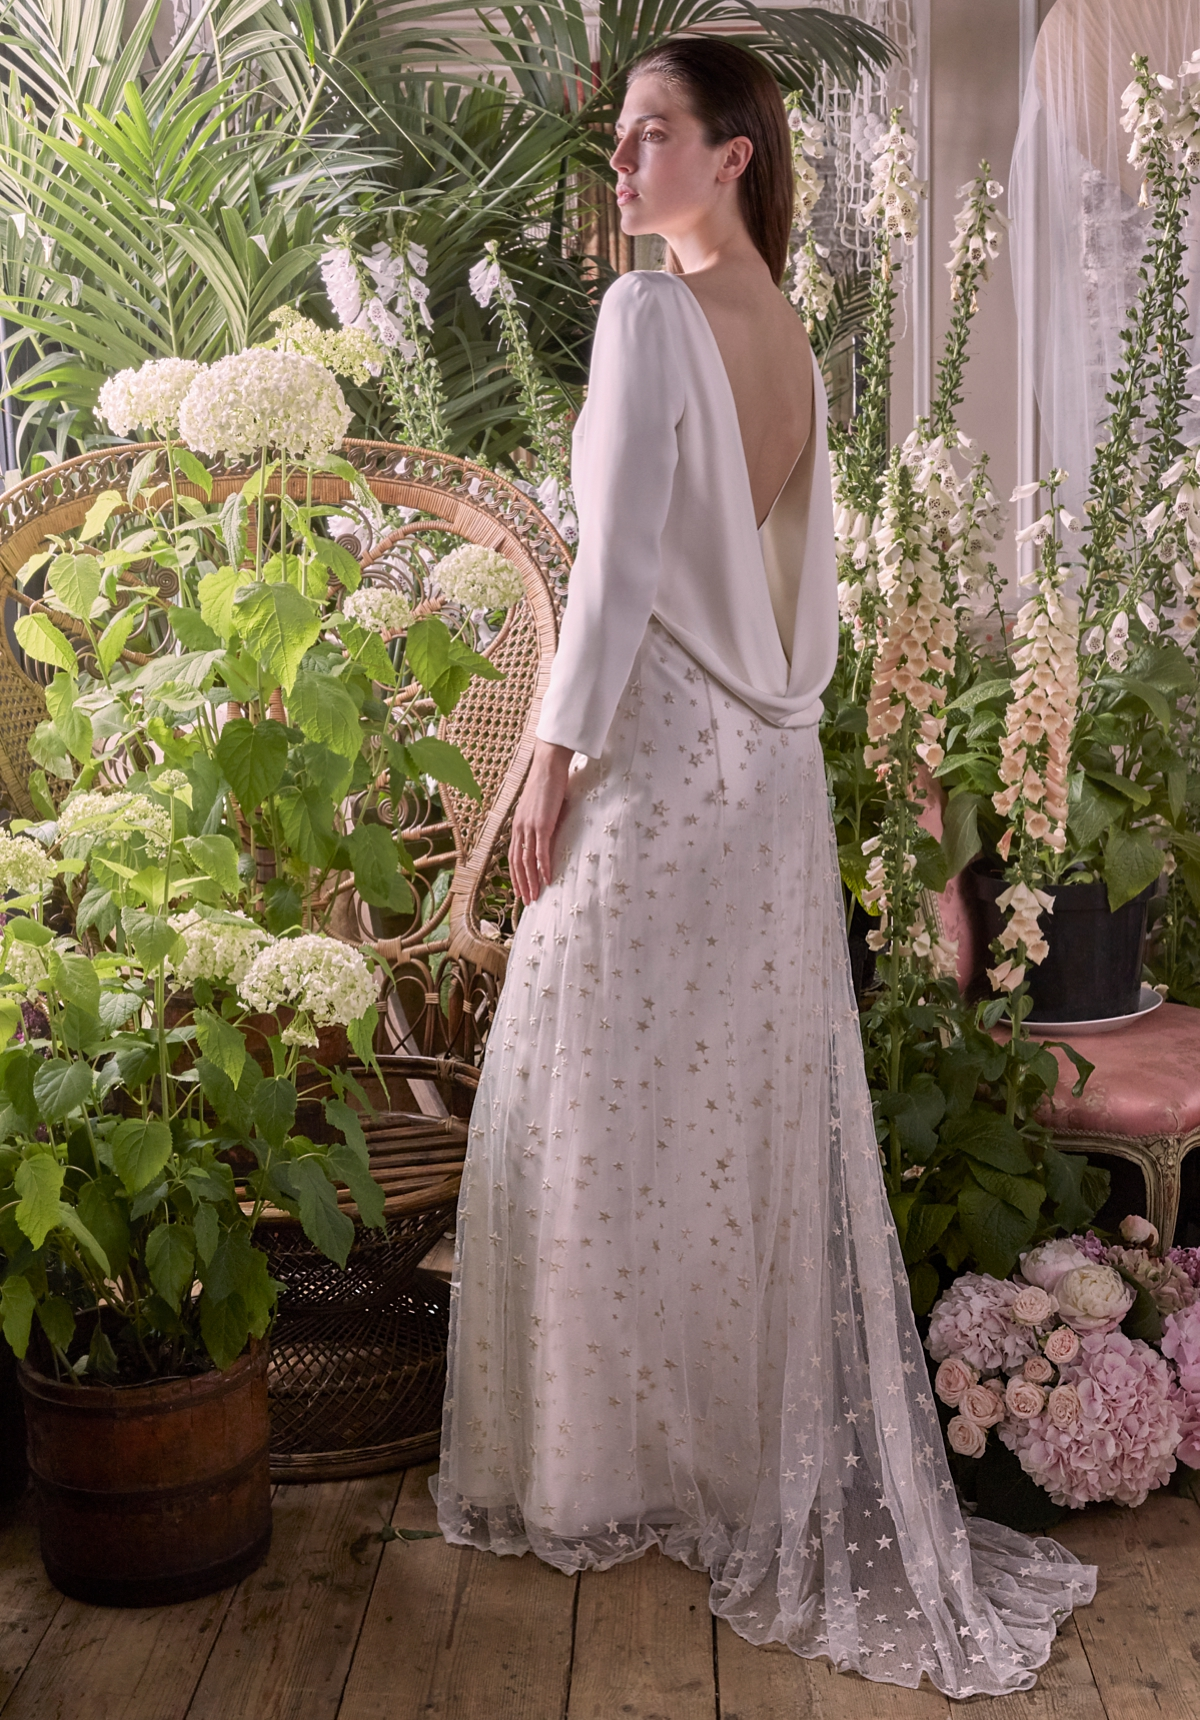 Wild Love, The 2017 Bridal Collection by Halfpenny London